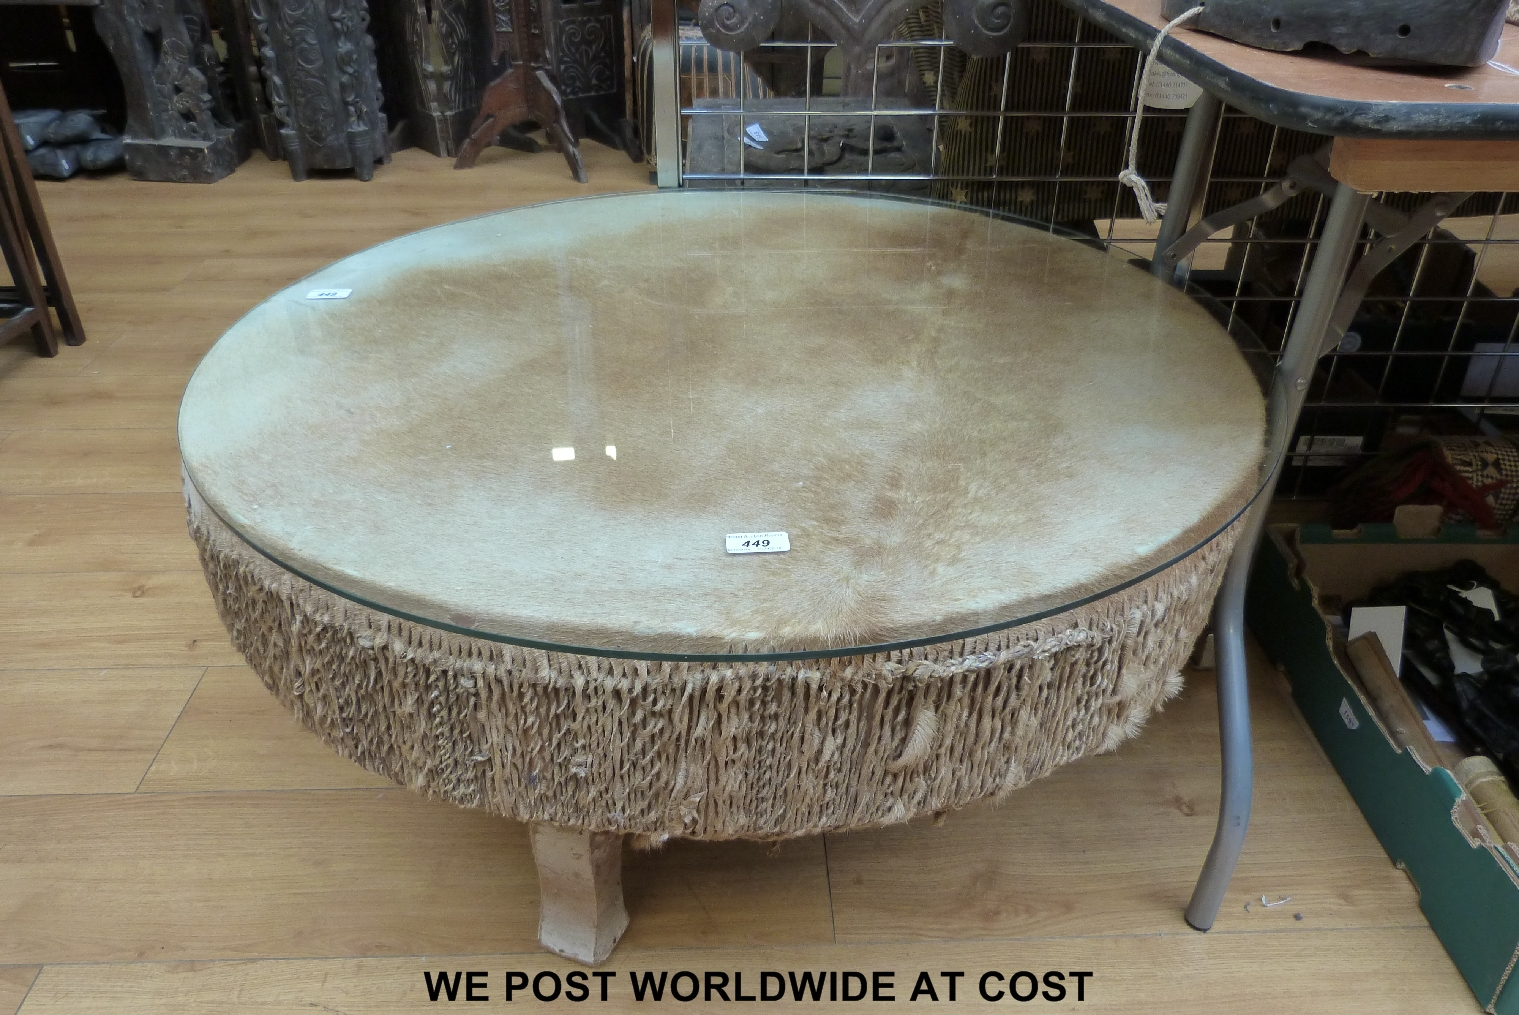 African Drum Coffee Table A Very Large African Drum With Antelope Hide Top For Use As A